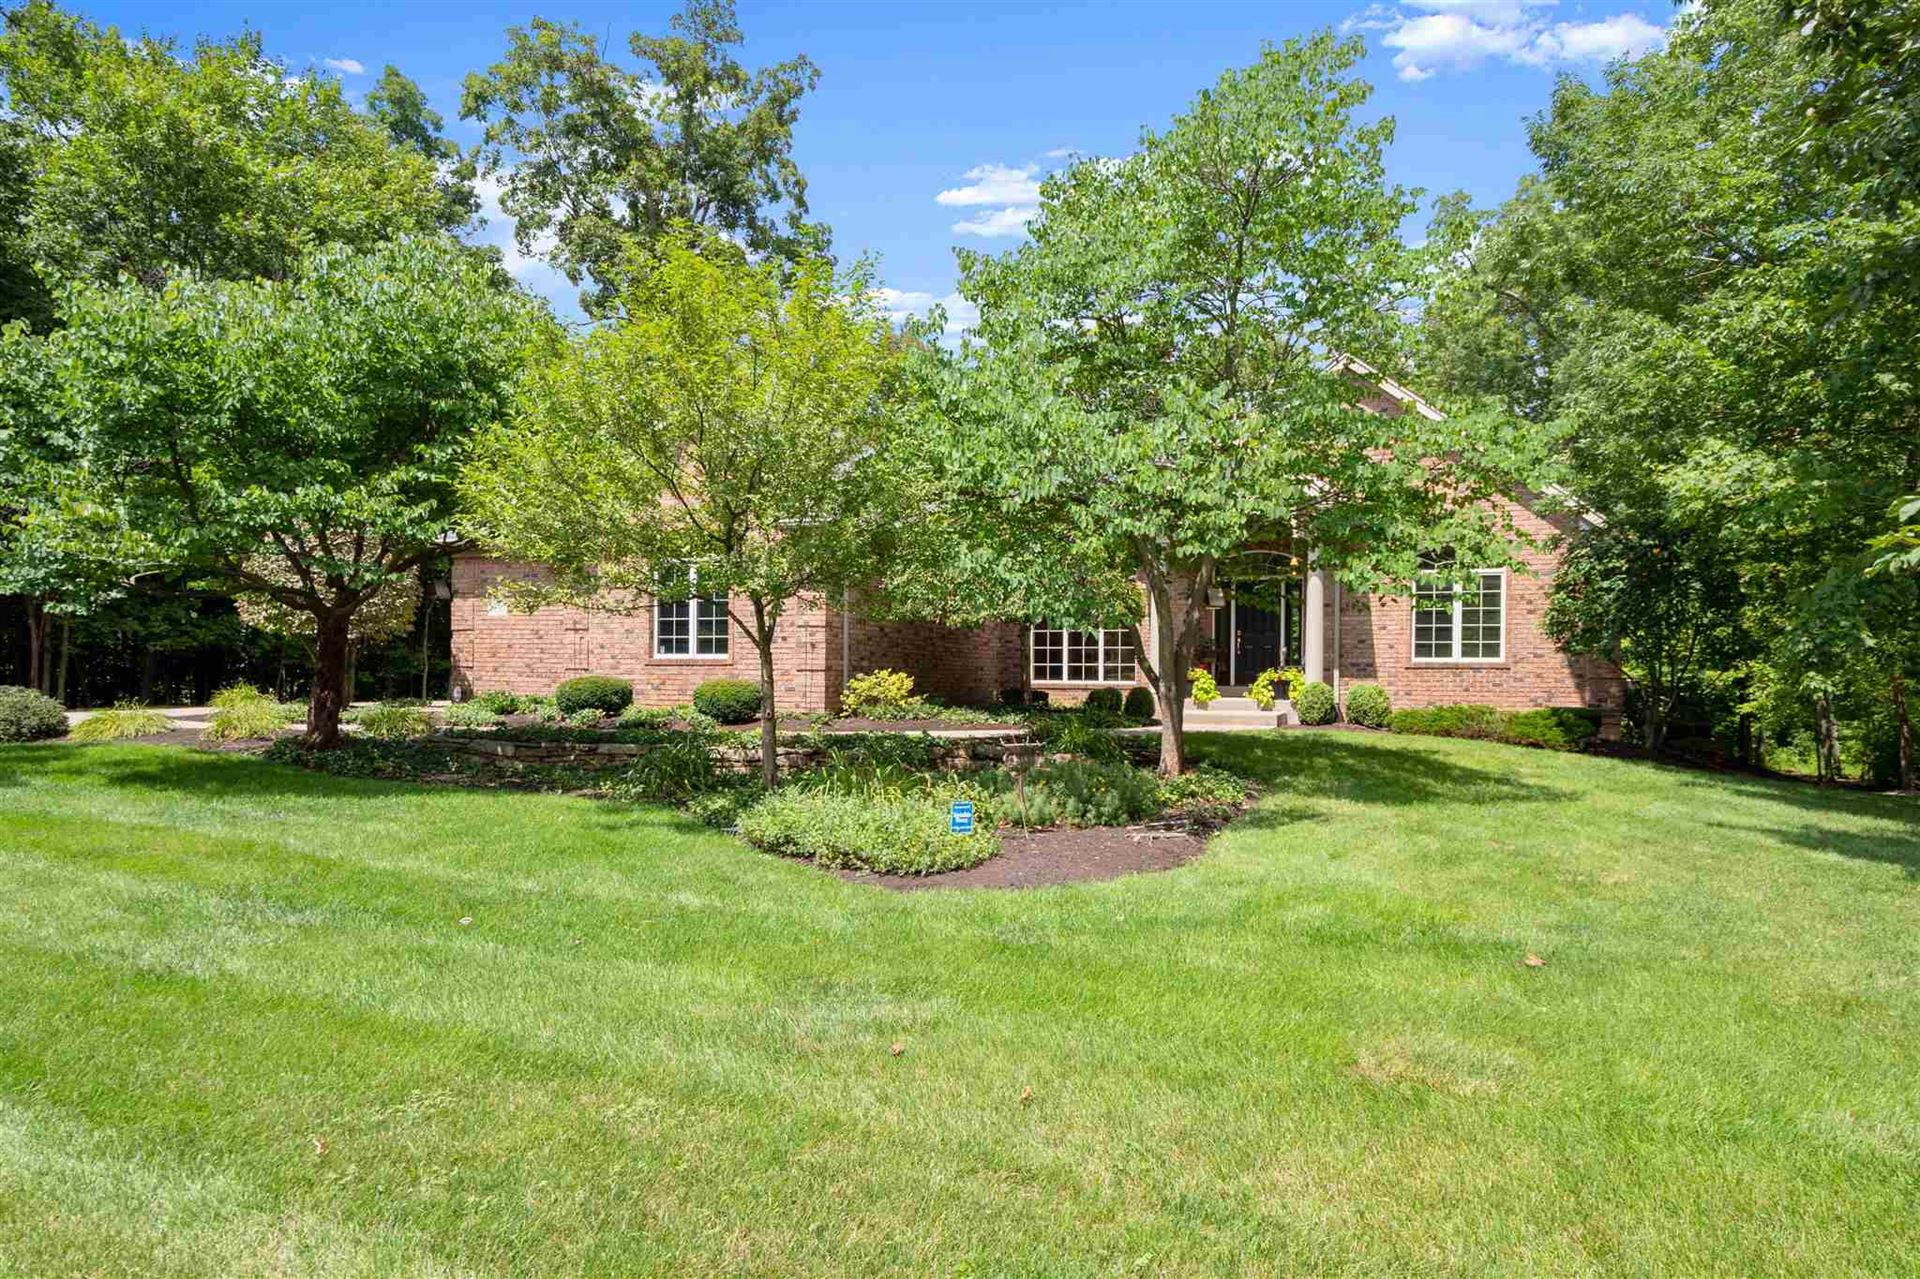 7930 Inverness Lakes Trail, Fort Wayne, IN 46804 - #: 202030810